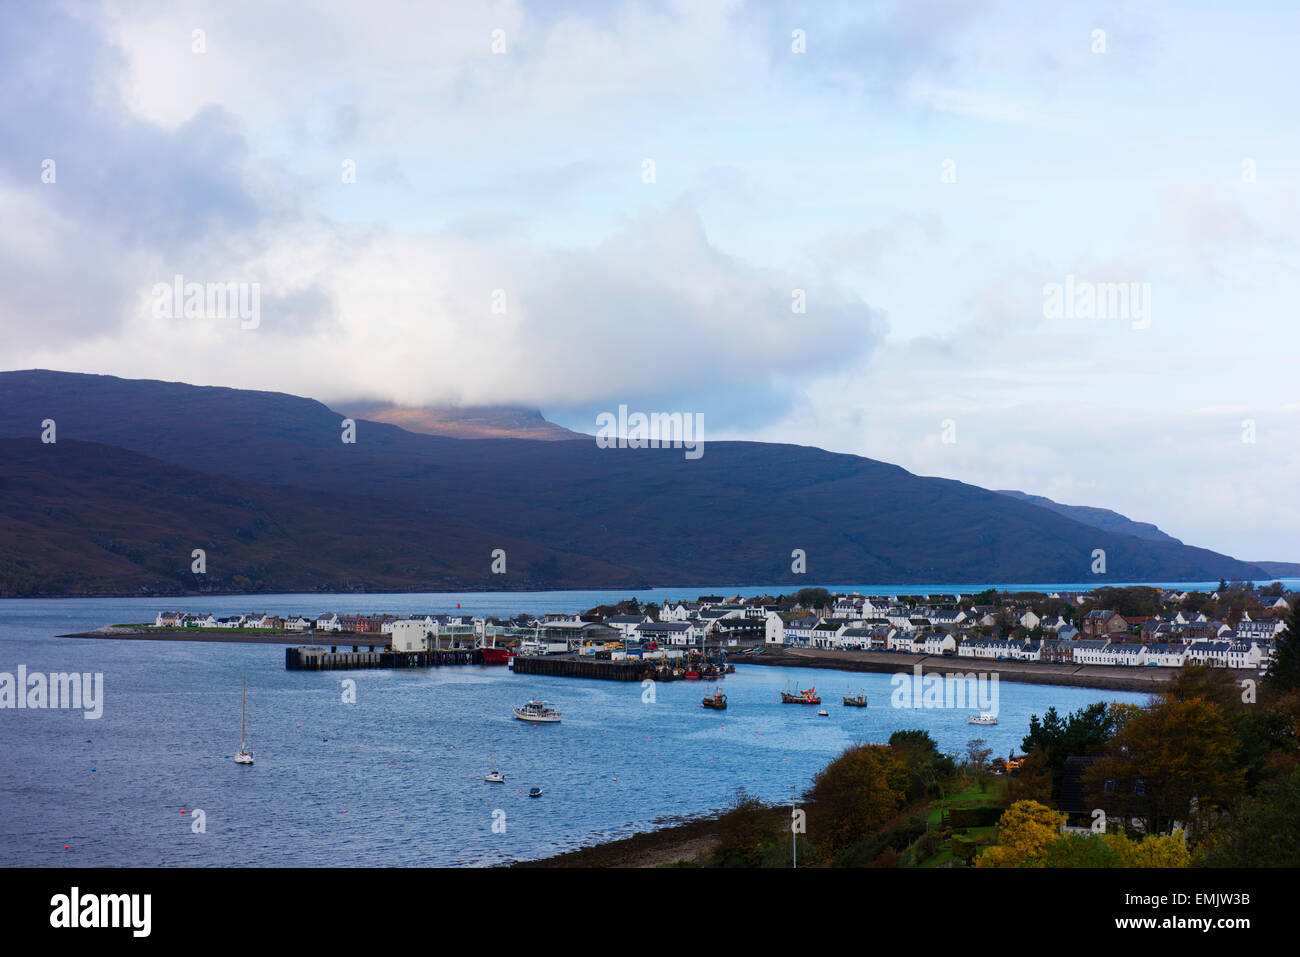 Ullapool and it's port on Loch Broom in Scotland's Highlands. - Stock Image